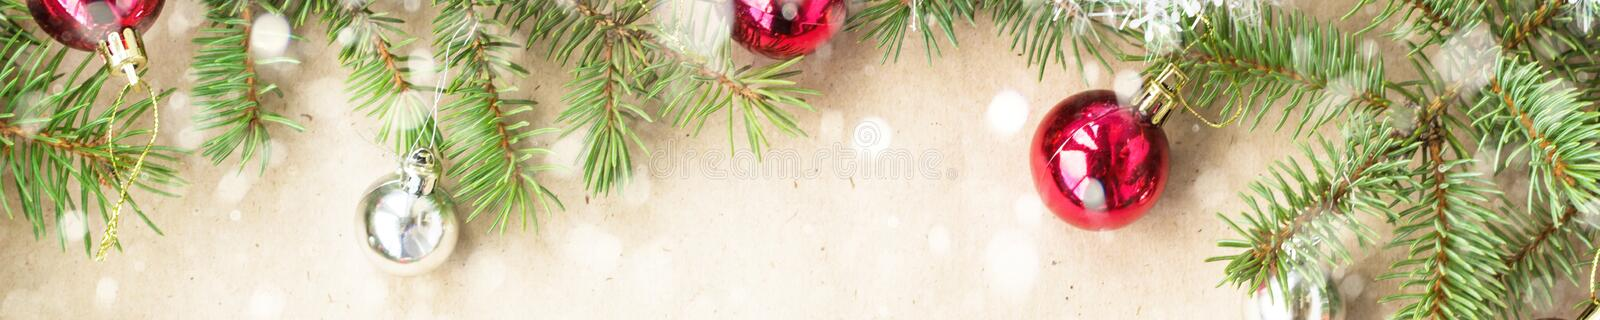 Banner of Festive christmas border with red balls on fir branches and snowflakes with snow on rustic beige background stock photography